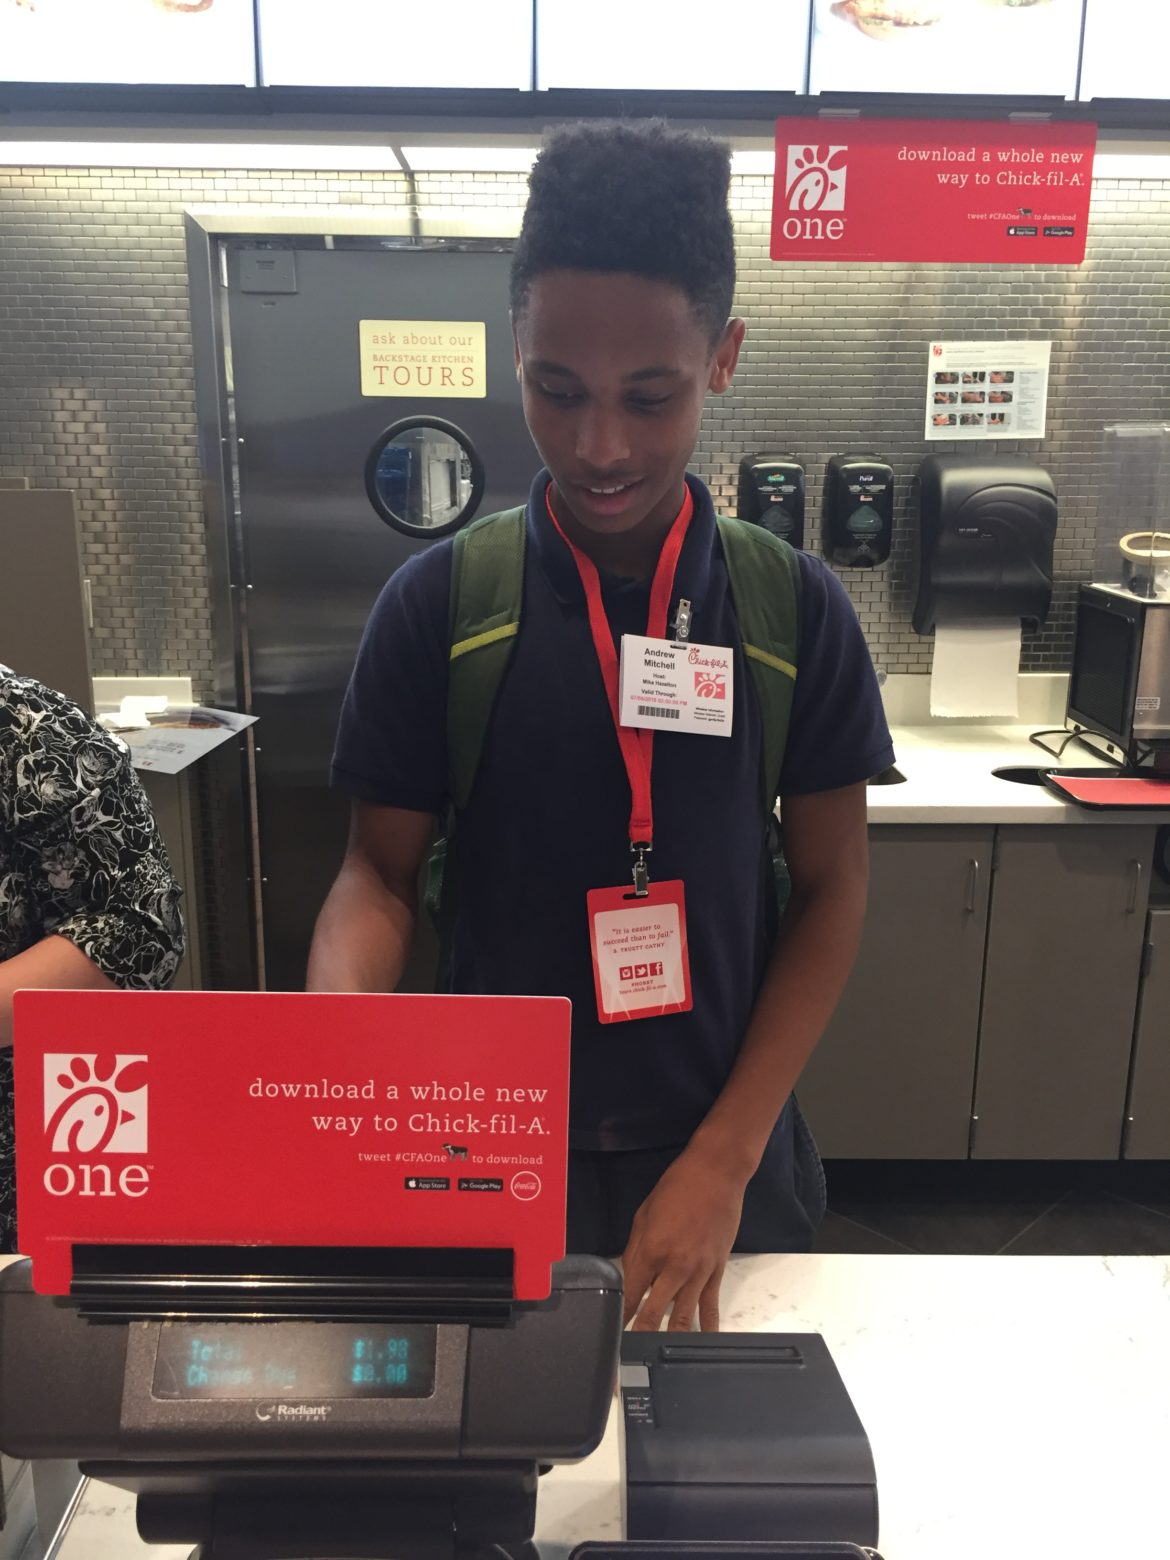 newnan teens participate in careerwise wednesday at chick fil a 2016 college bound members from the newnan coweta club were able to engage in career exploration job shadowing and mentorship opportunities provided